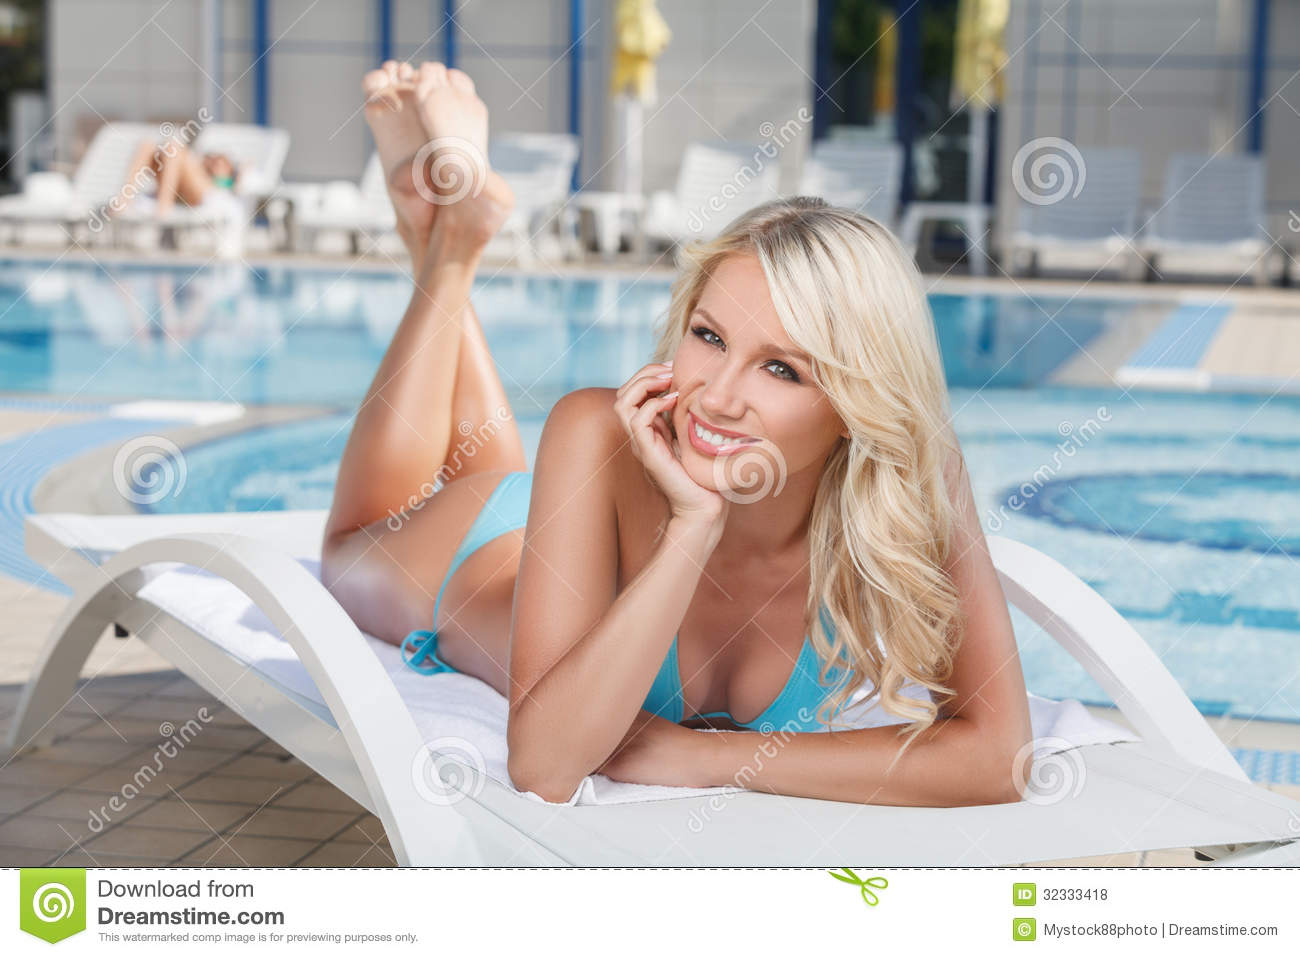 ... Bikini Lying On The Deck Royalty Free Stock Photos - Image: 32333418